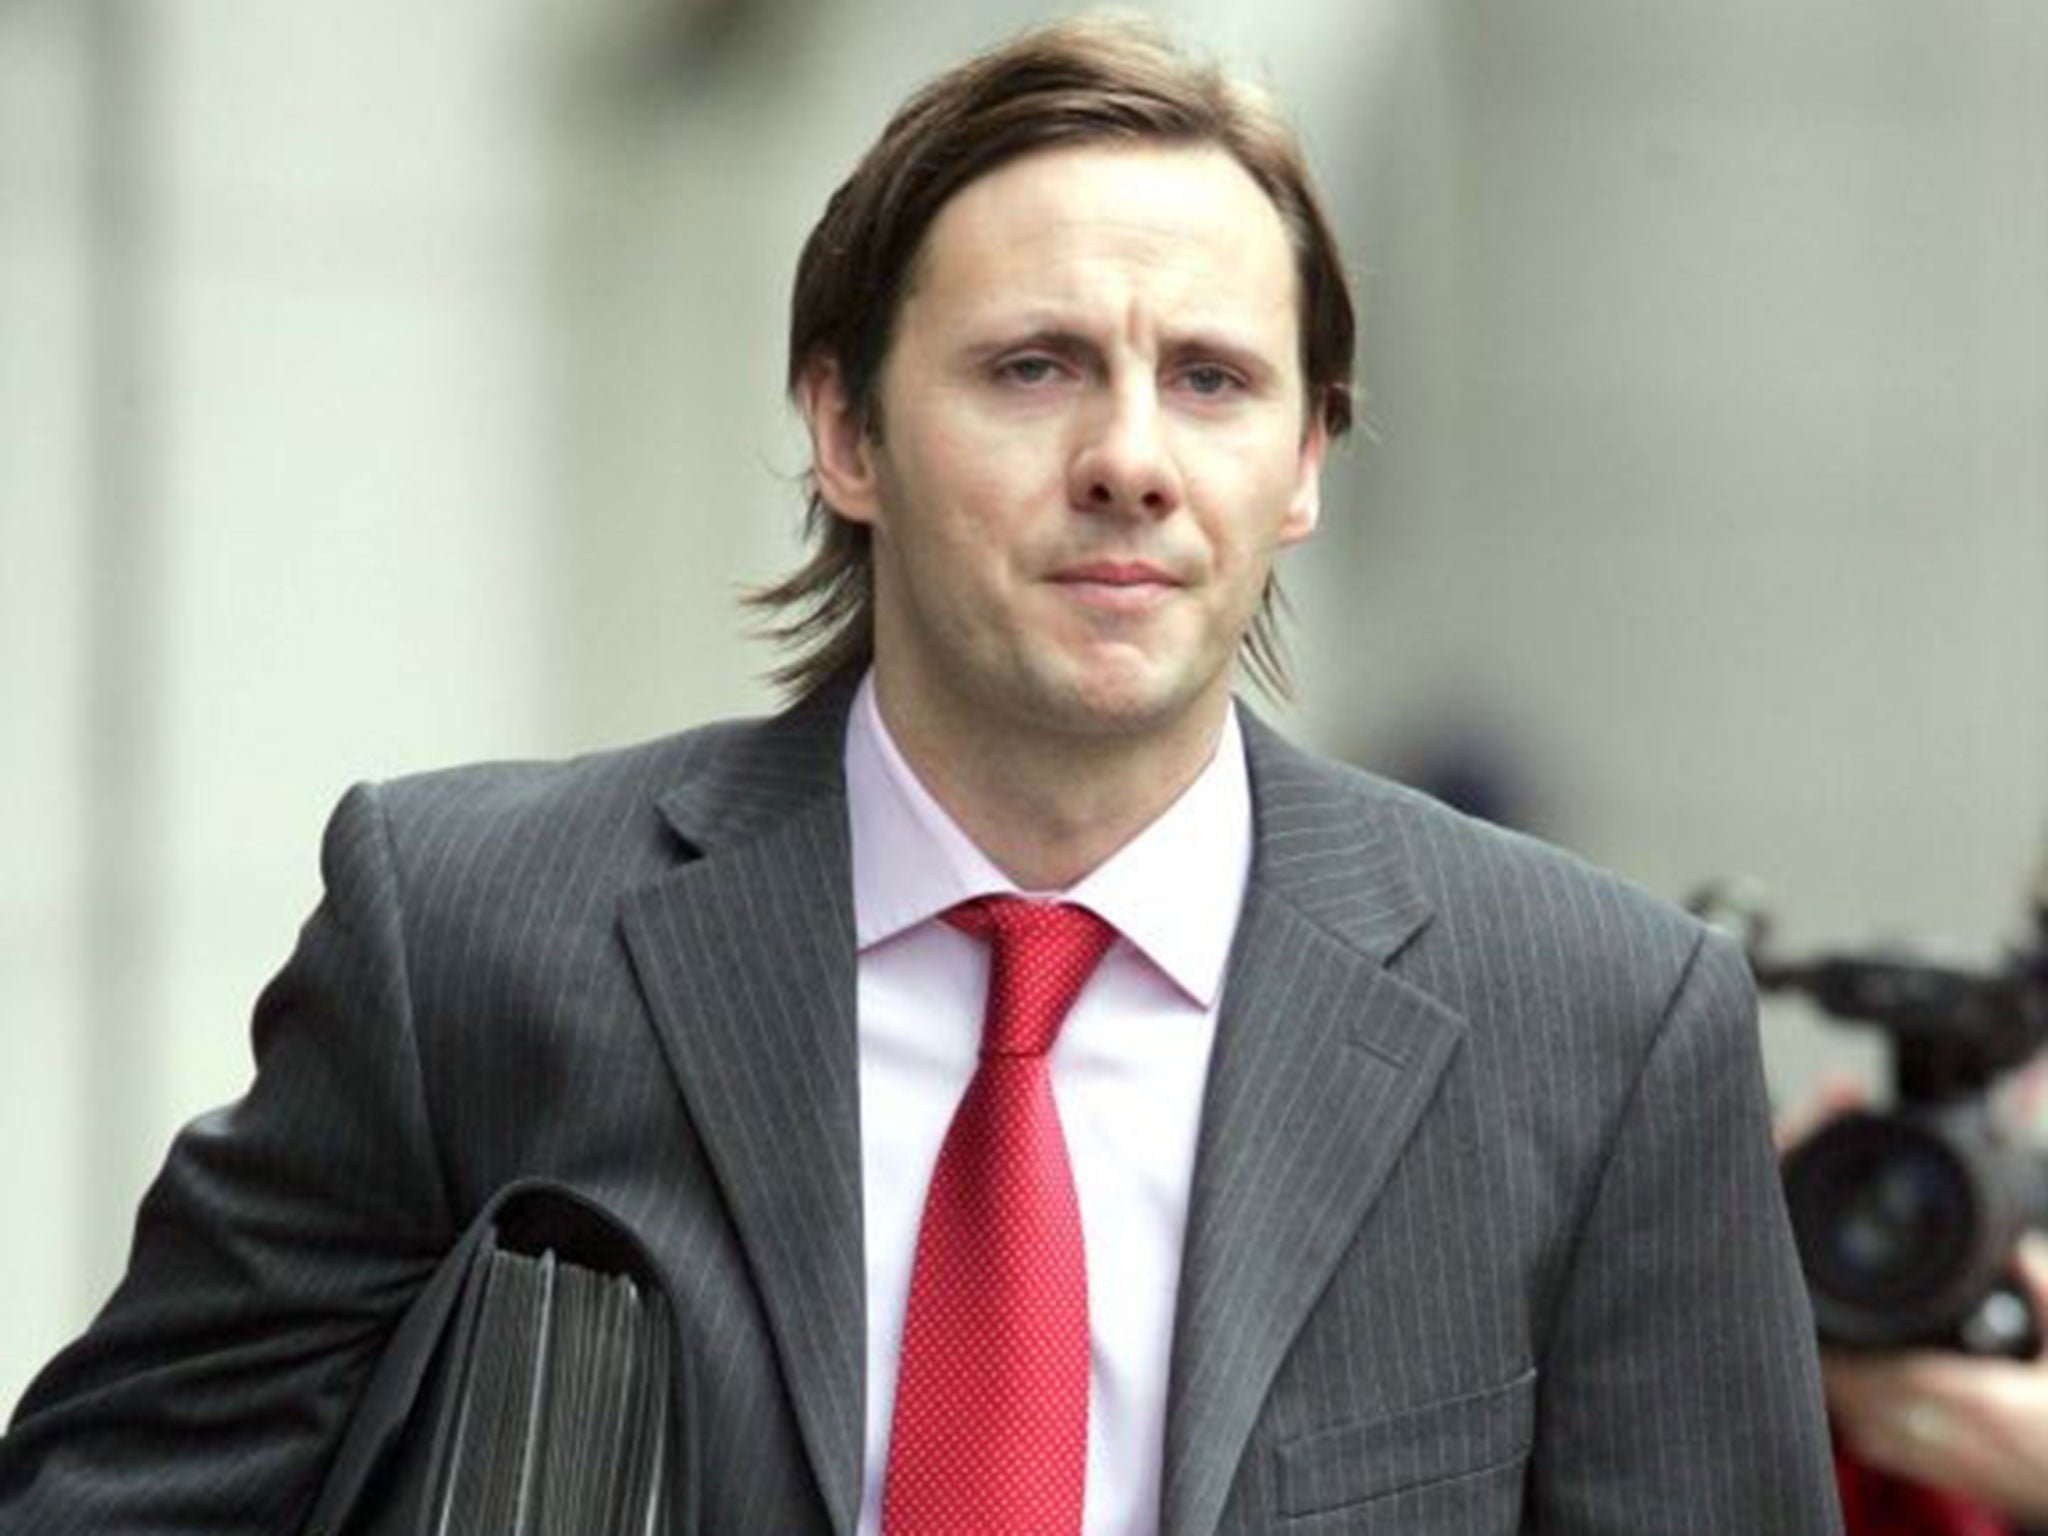 546c0e579 The making of Glenn Mulcaire  A strong character and an excellent organiser  who commanded respect and was convicted of phone hacking